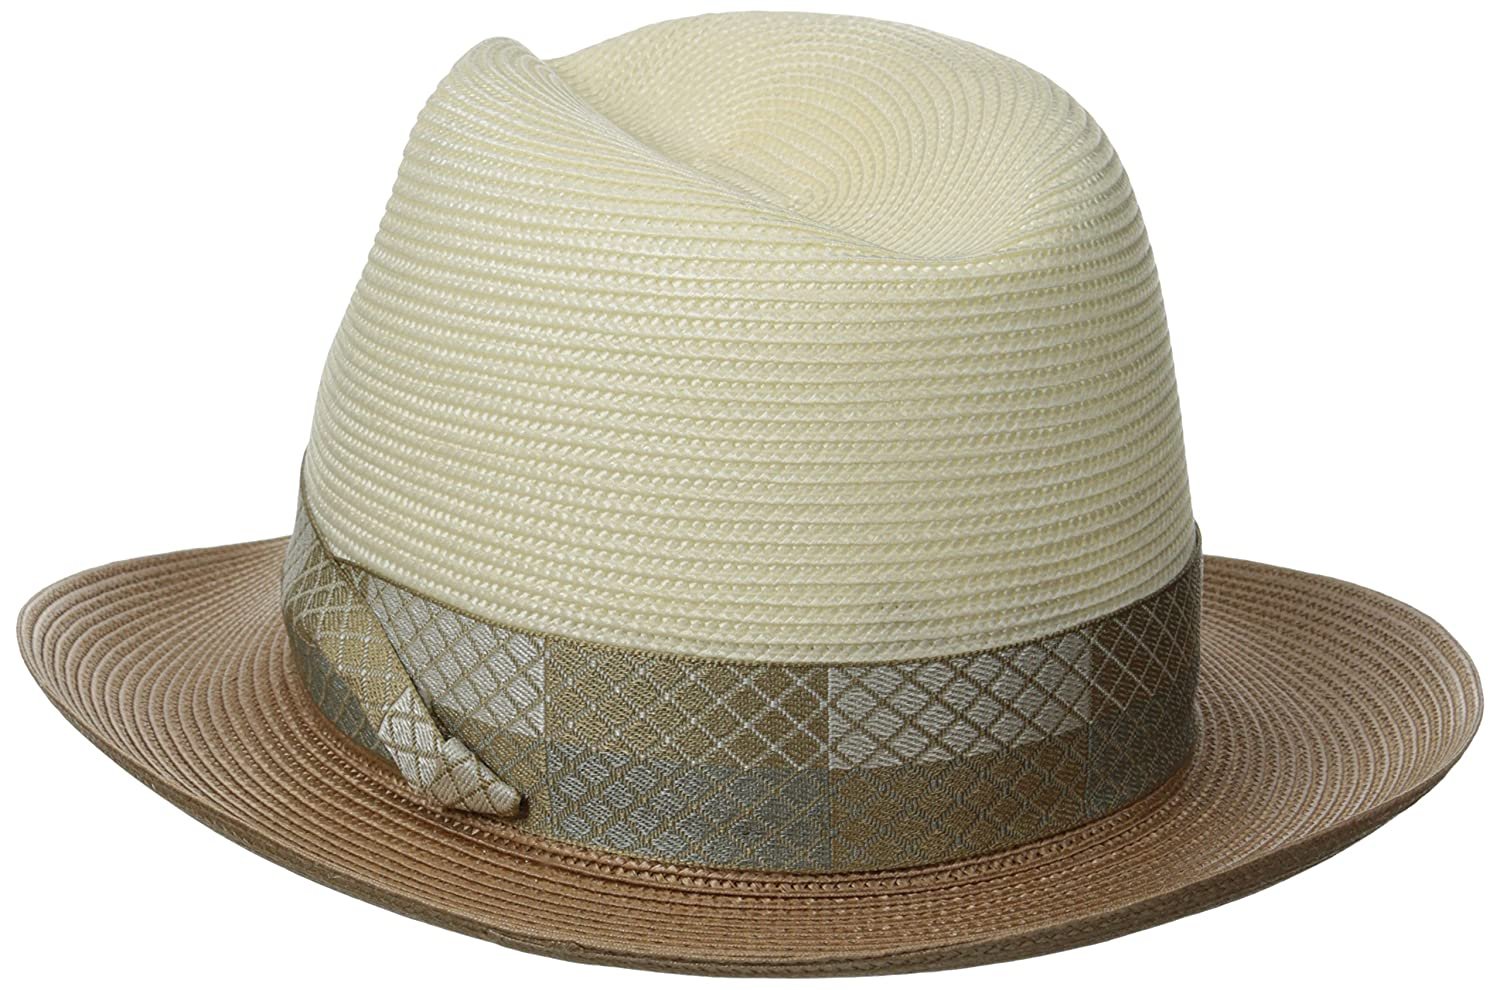 668ad9a4779fde Stetson Men's Andover Florenine Milan Straw Hat at Amazon Men's Clothing  store: